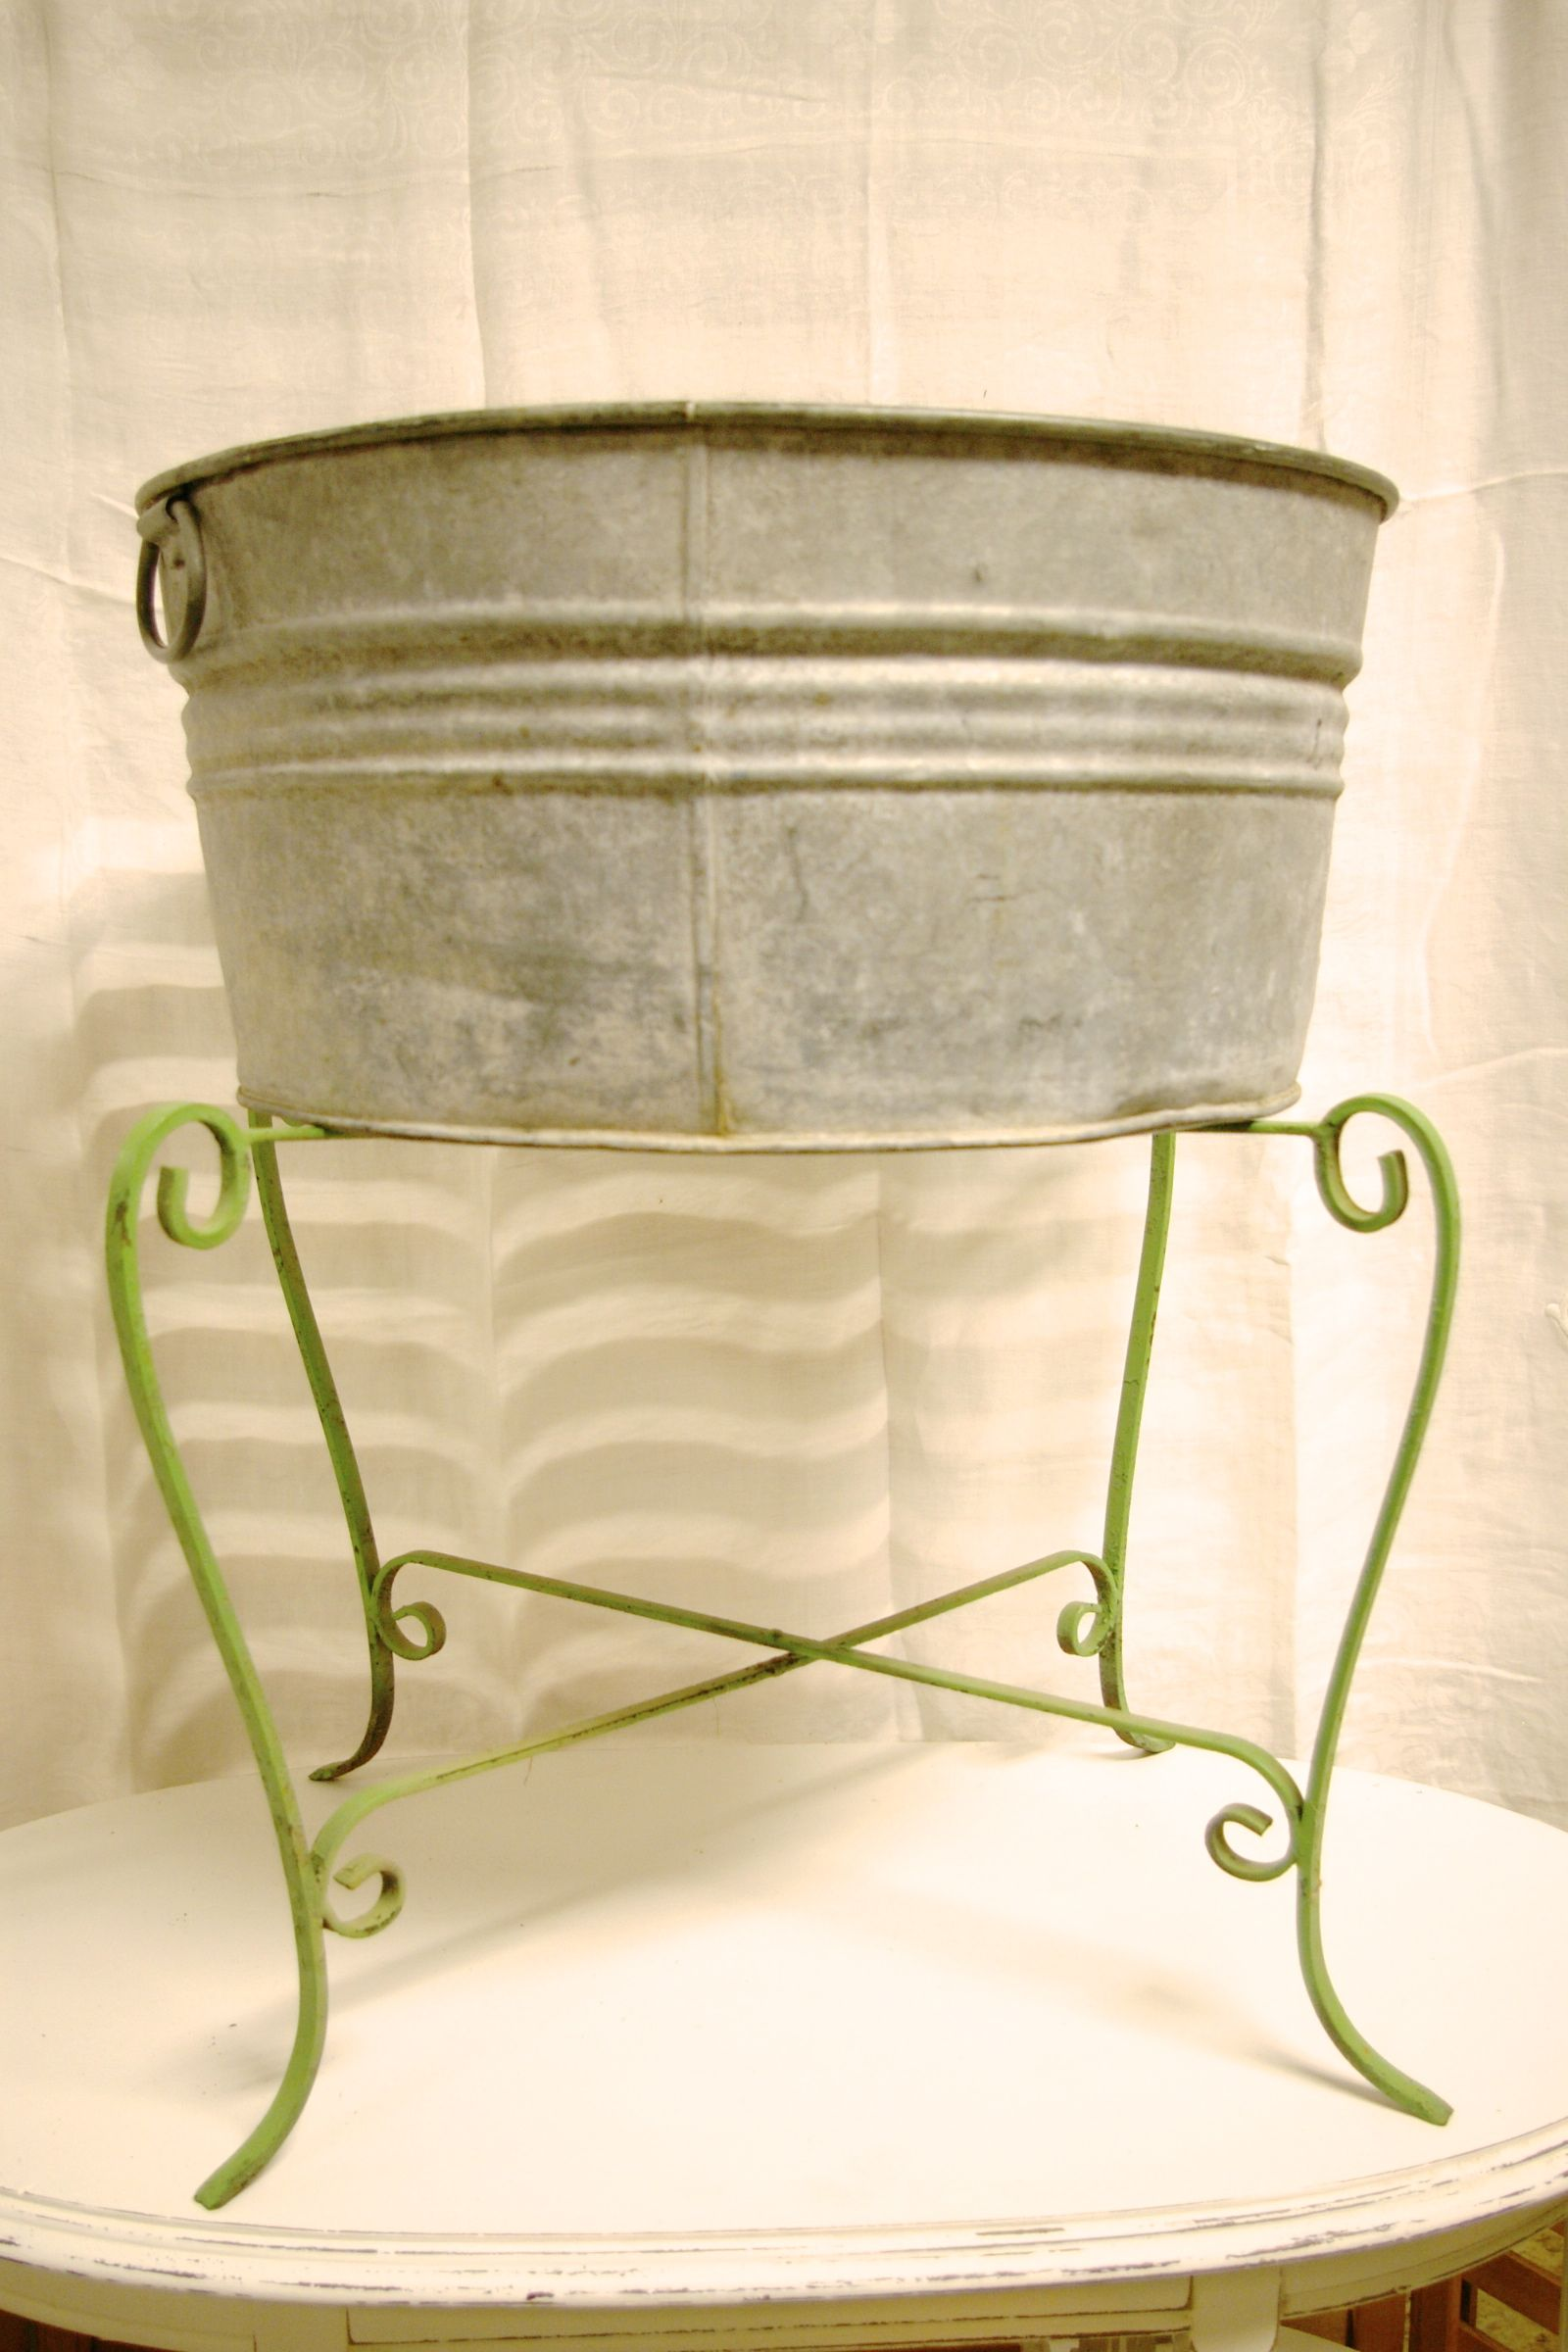 Wash Tub With Stand : Love the vintage metal wash tub stand. A Few Of Our Favorite Things ...